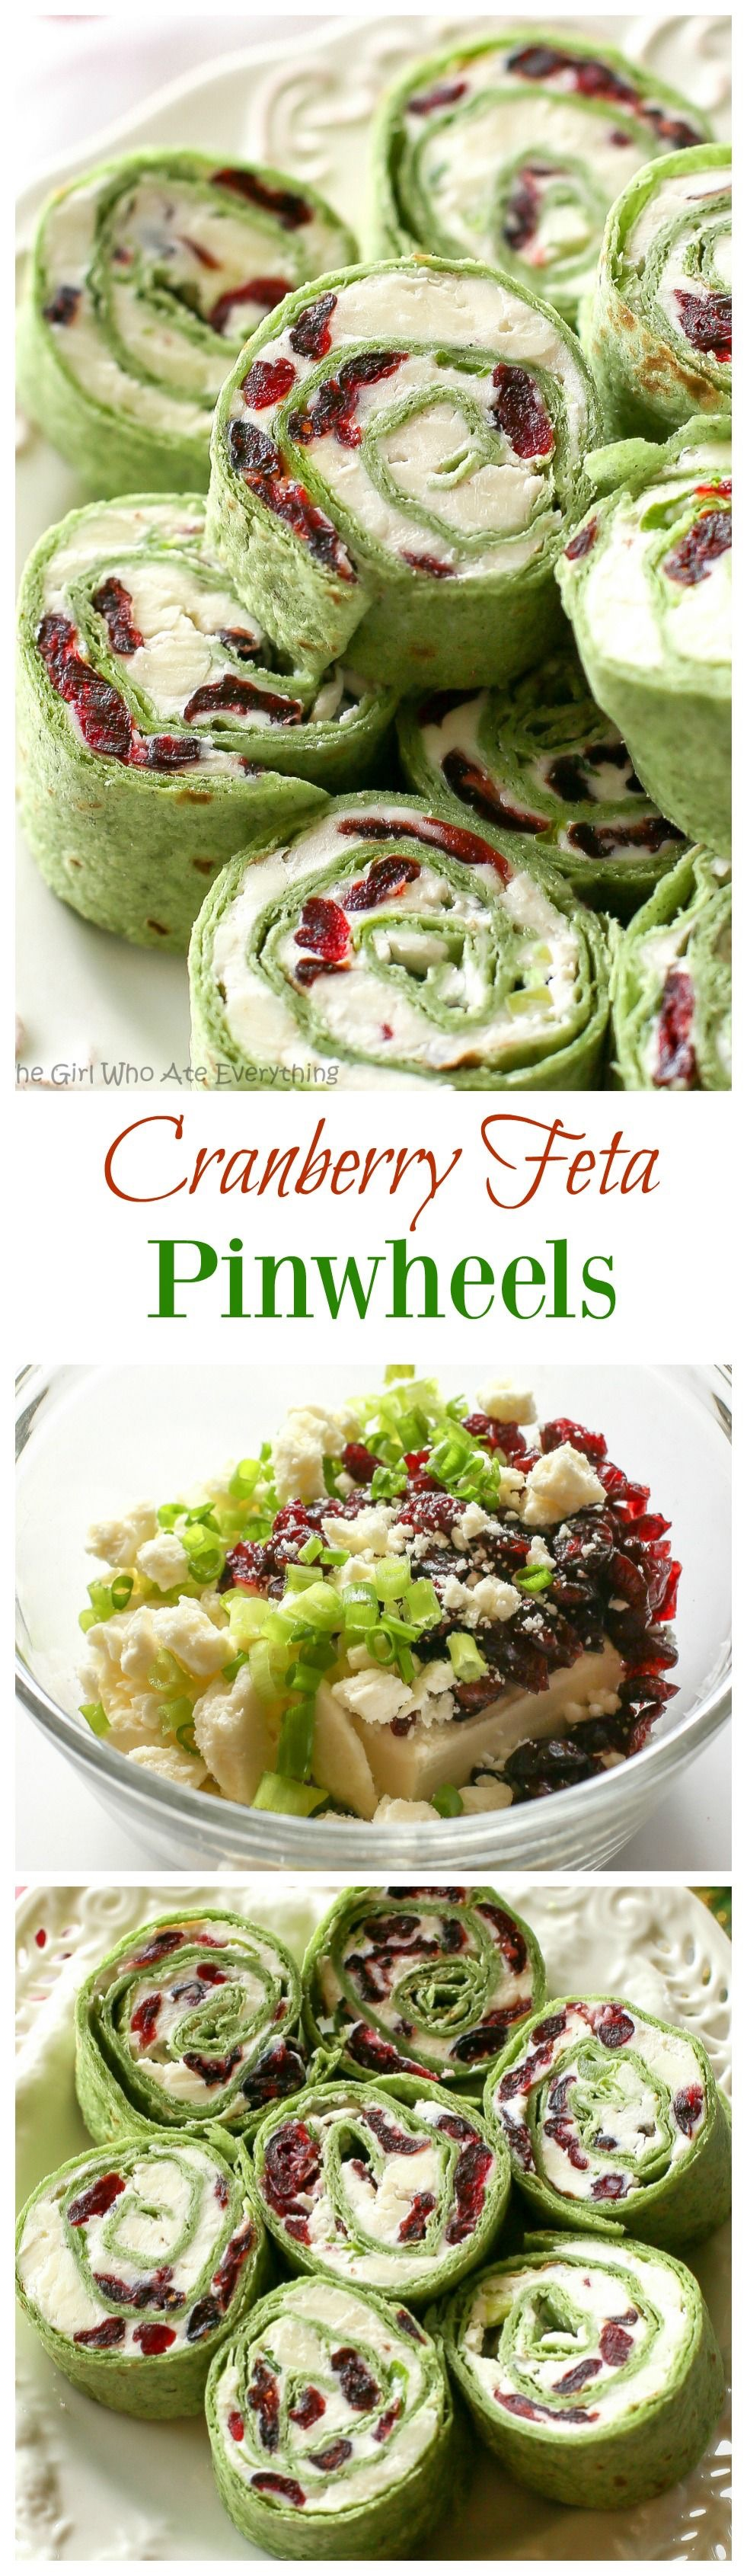 Cranberry feta pinwheels appetizer pinterest feta food and snacks pecans cranberry and feta pinwheels a sweet and salty combo with cranberries tangy feta and onions an easy and delicious christmas appetizer forumfinder Images